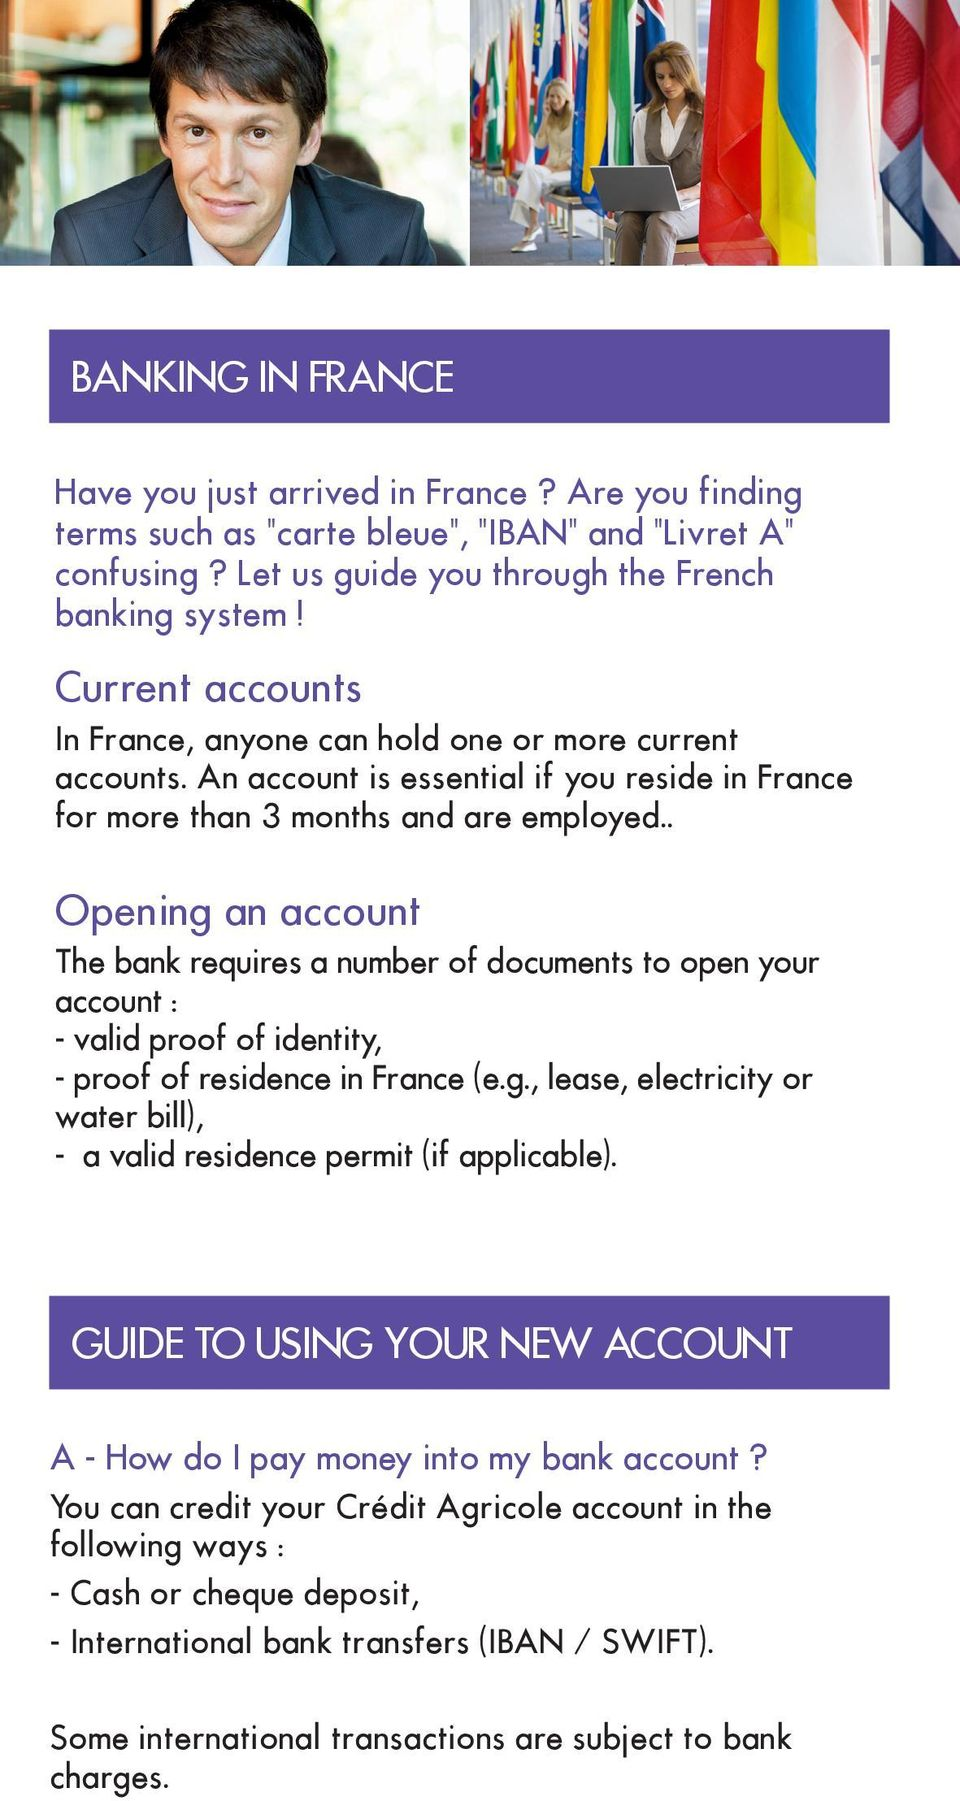 Current In France, accounts anyone can hold one or In France, more anyone current can hold accounts.